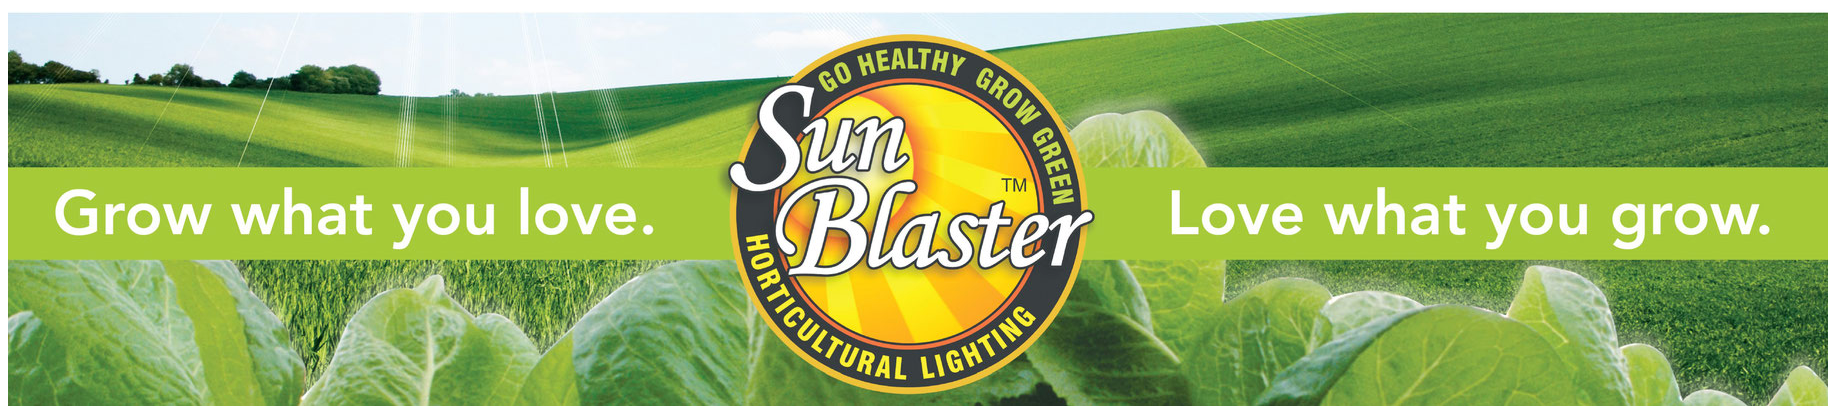 Order sunblaster lighting online Canada